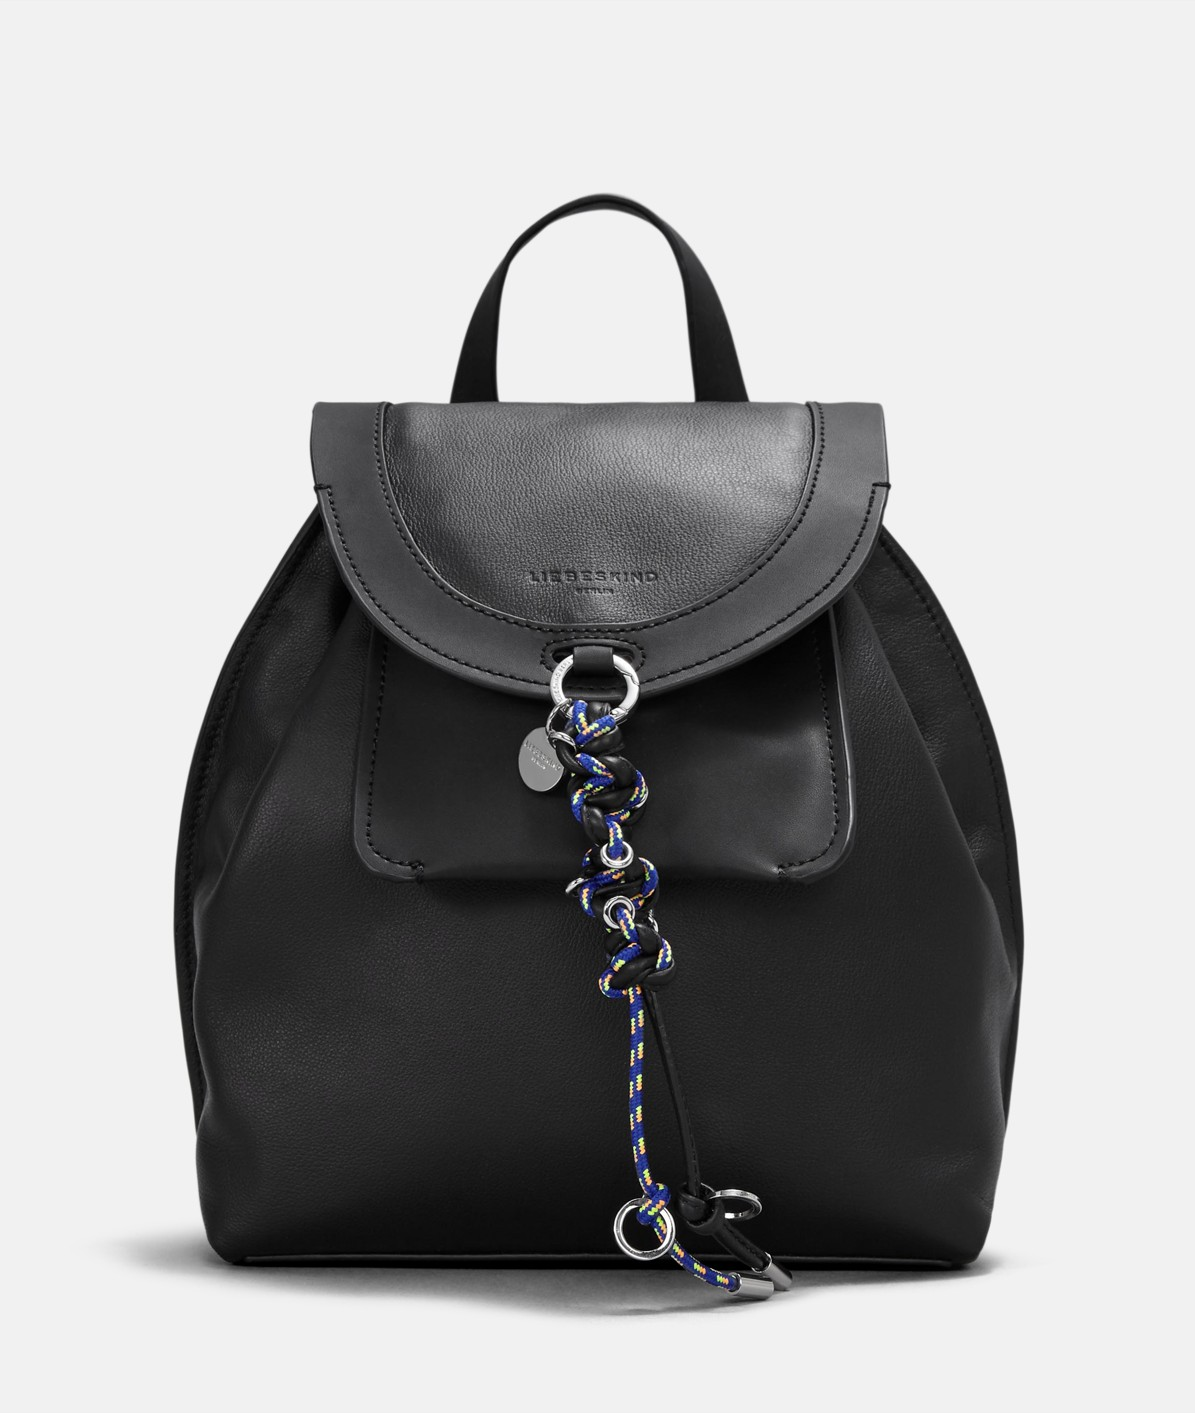 Rucksack with scoubidou pendant from liebeskind